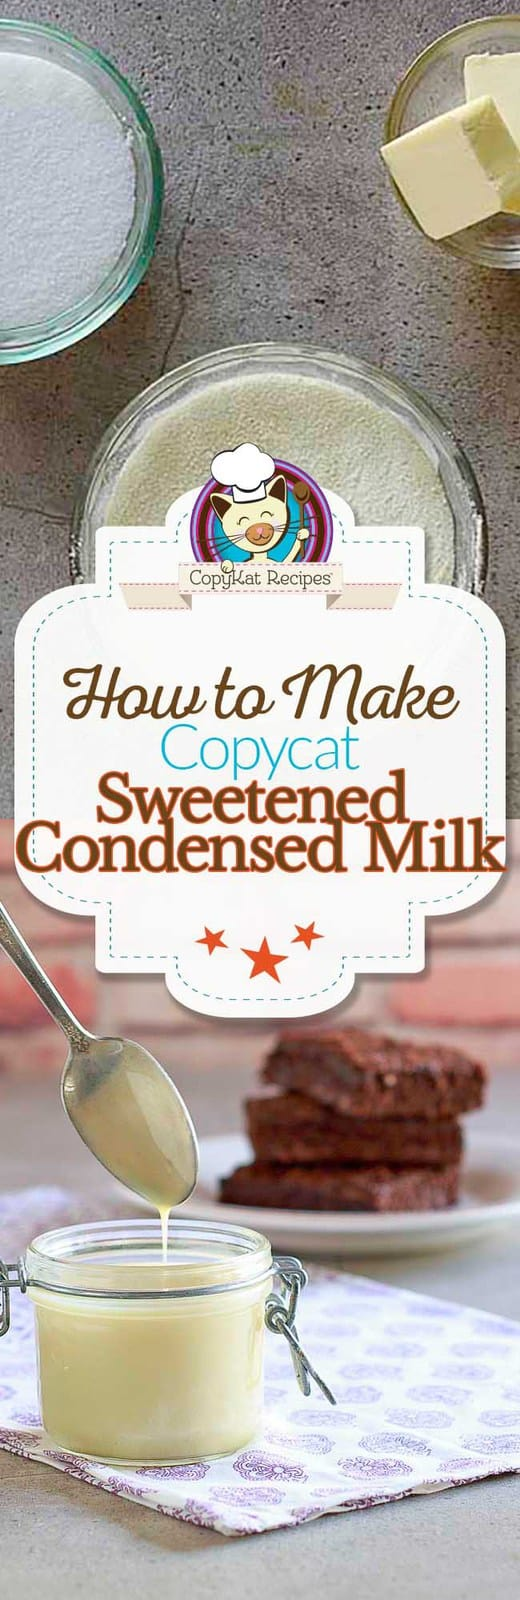 Save money when you make homemade sweetened condensed milk at home.